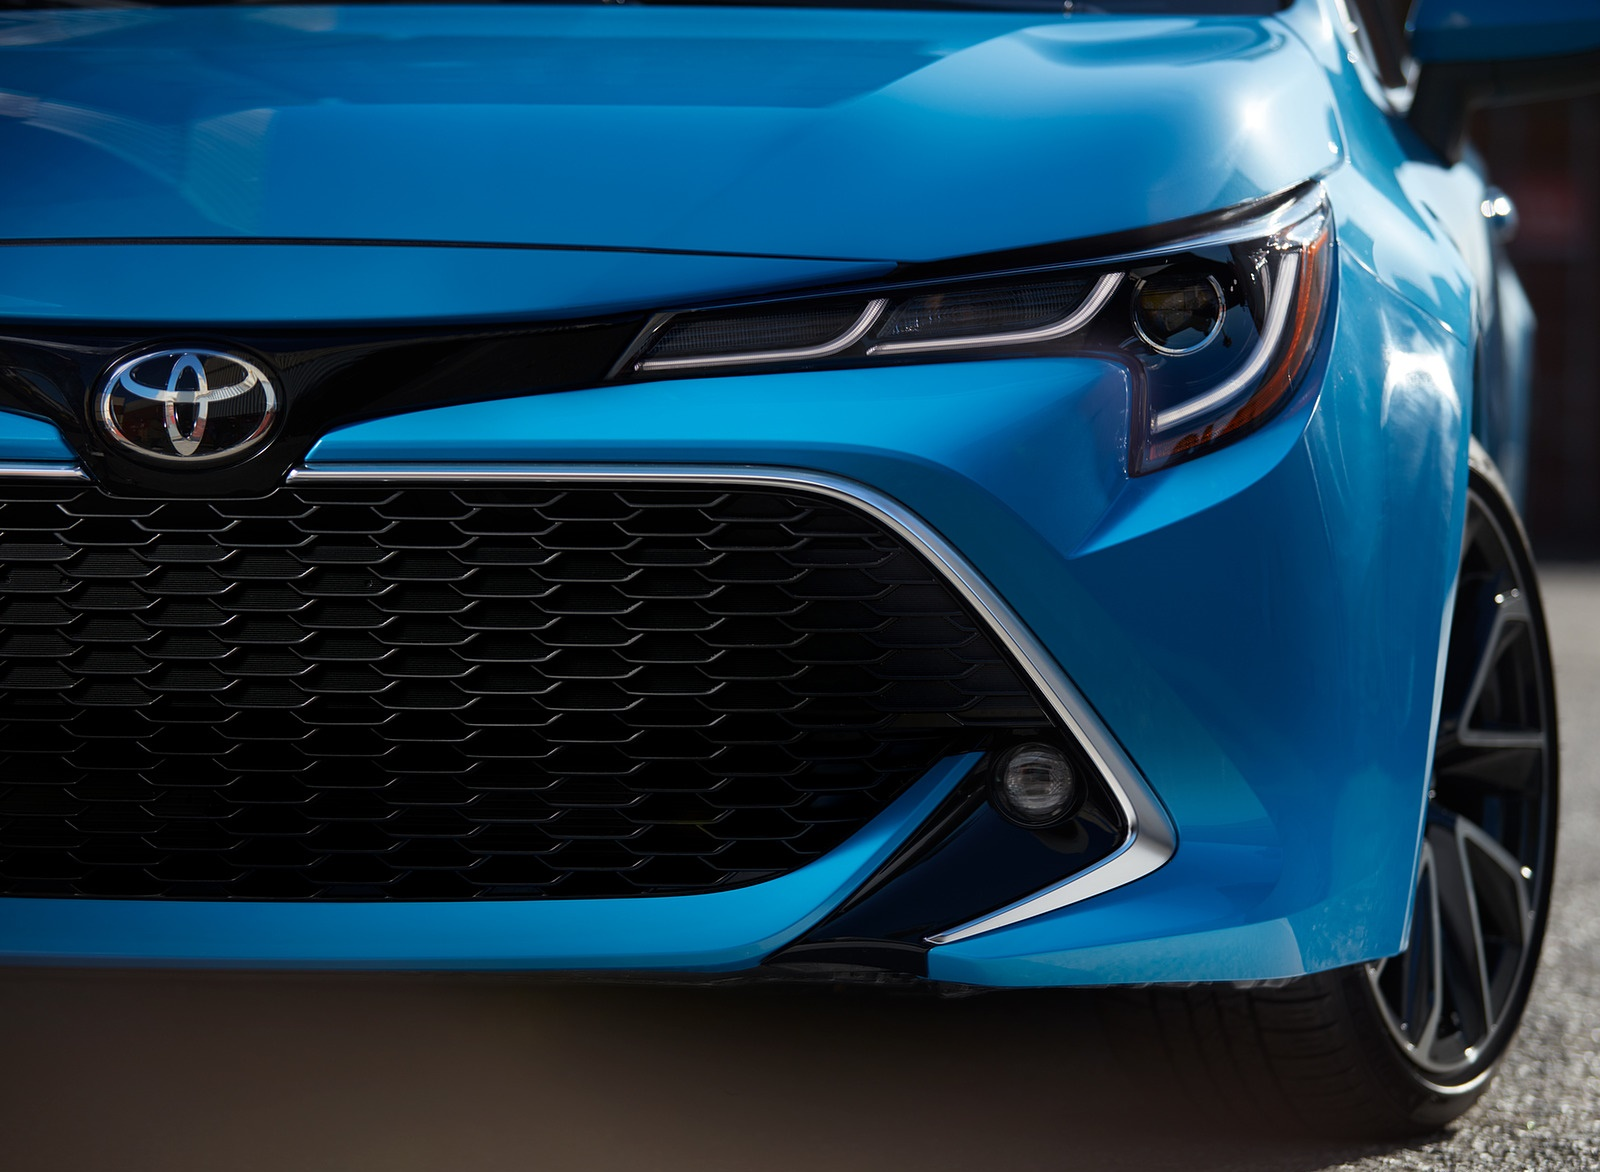 2019 Toyota Corolla Hatchback Grill Wallpapers #13 of 75